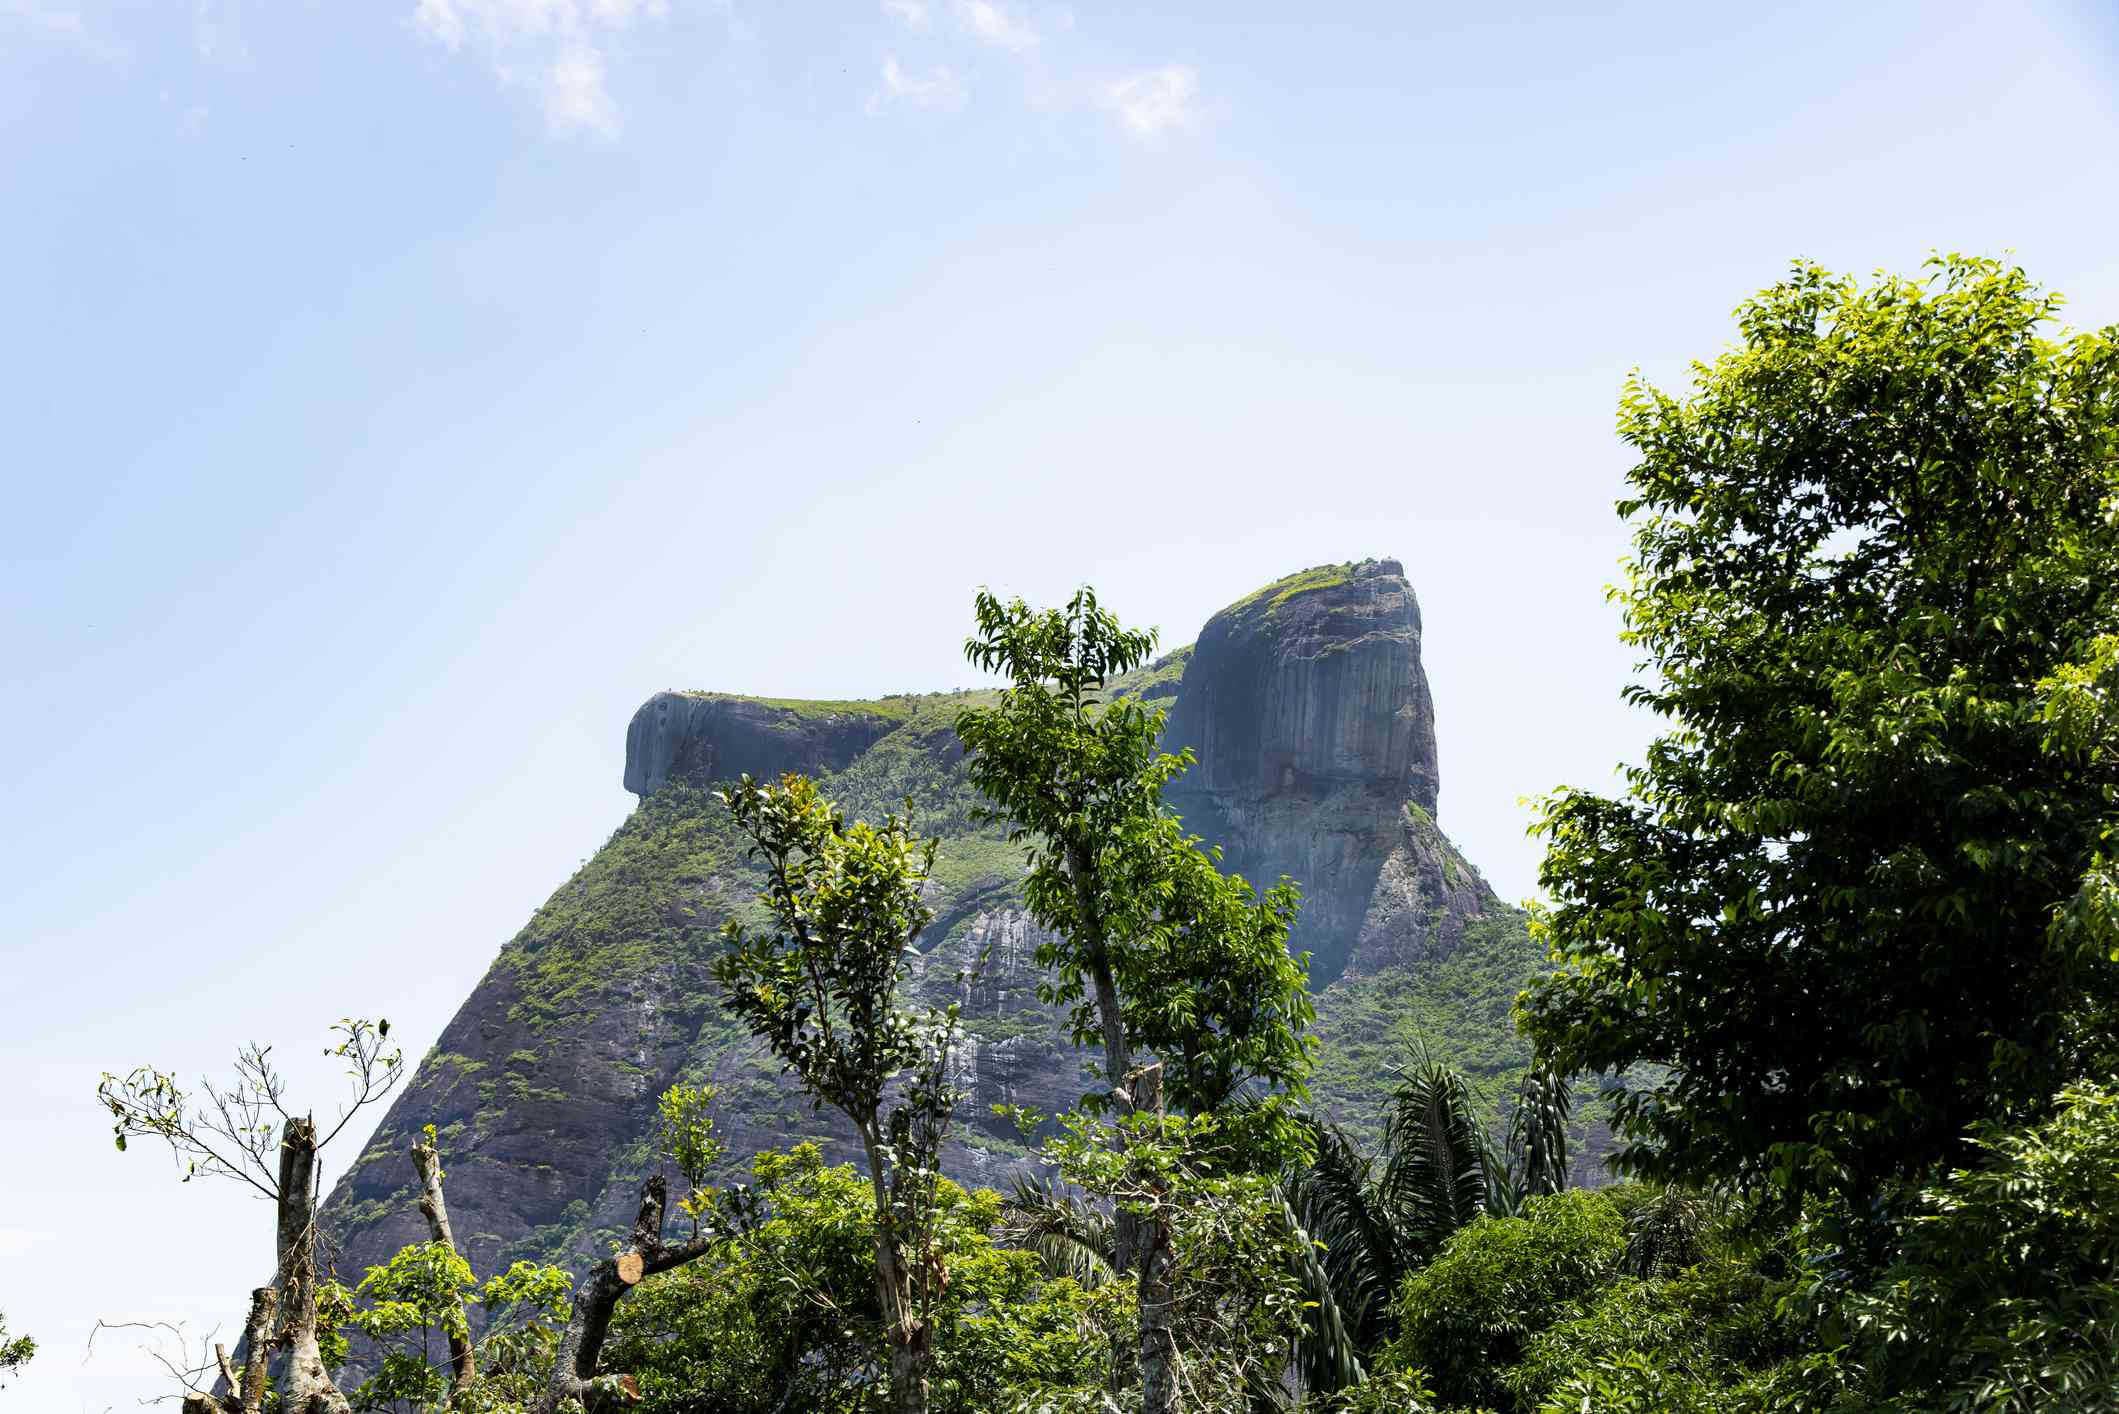 Pedra da Gávea, a stone mountain with what appears to be a human face at the top surrounded by tall green trees in the foreground and a blue sky in the background